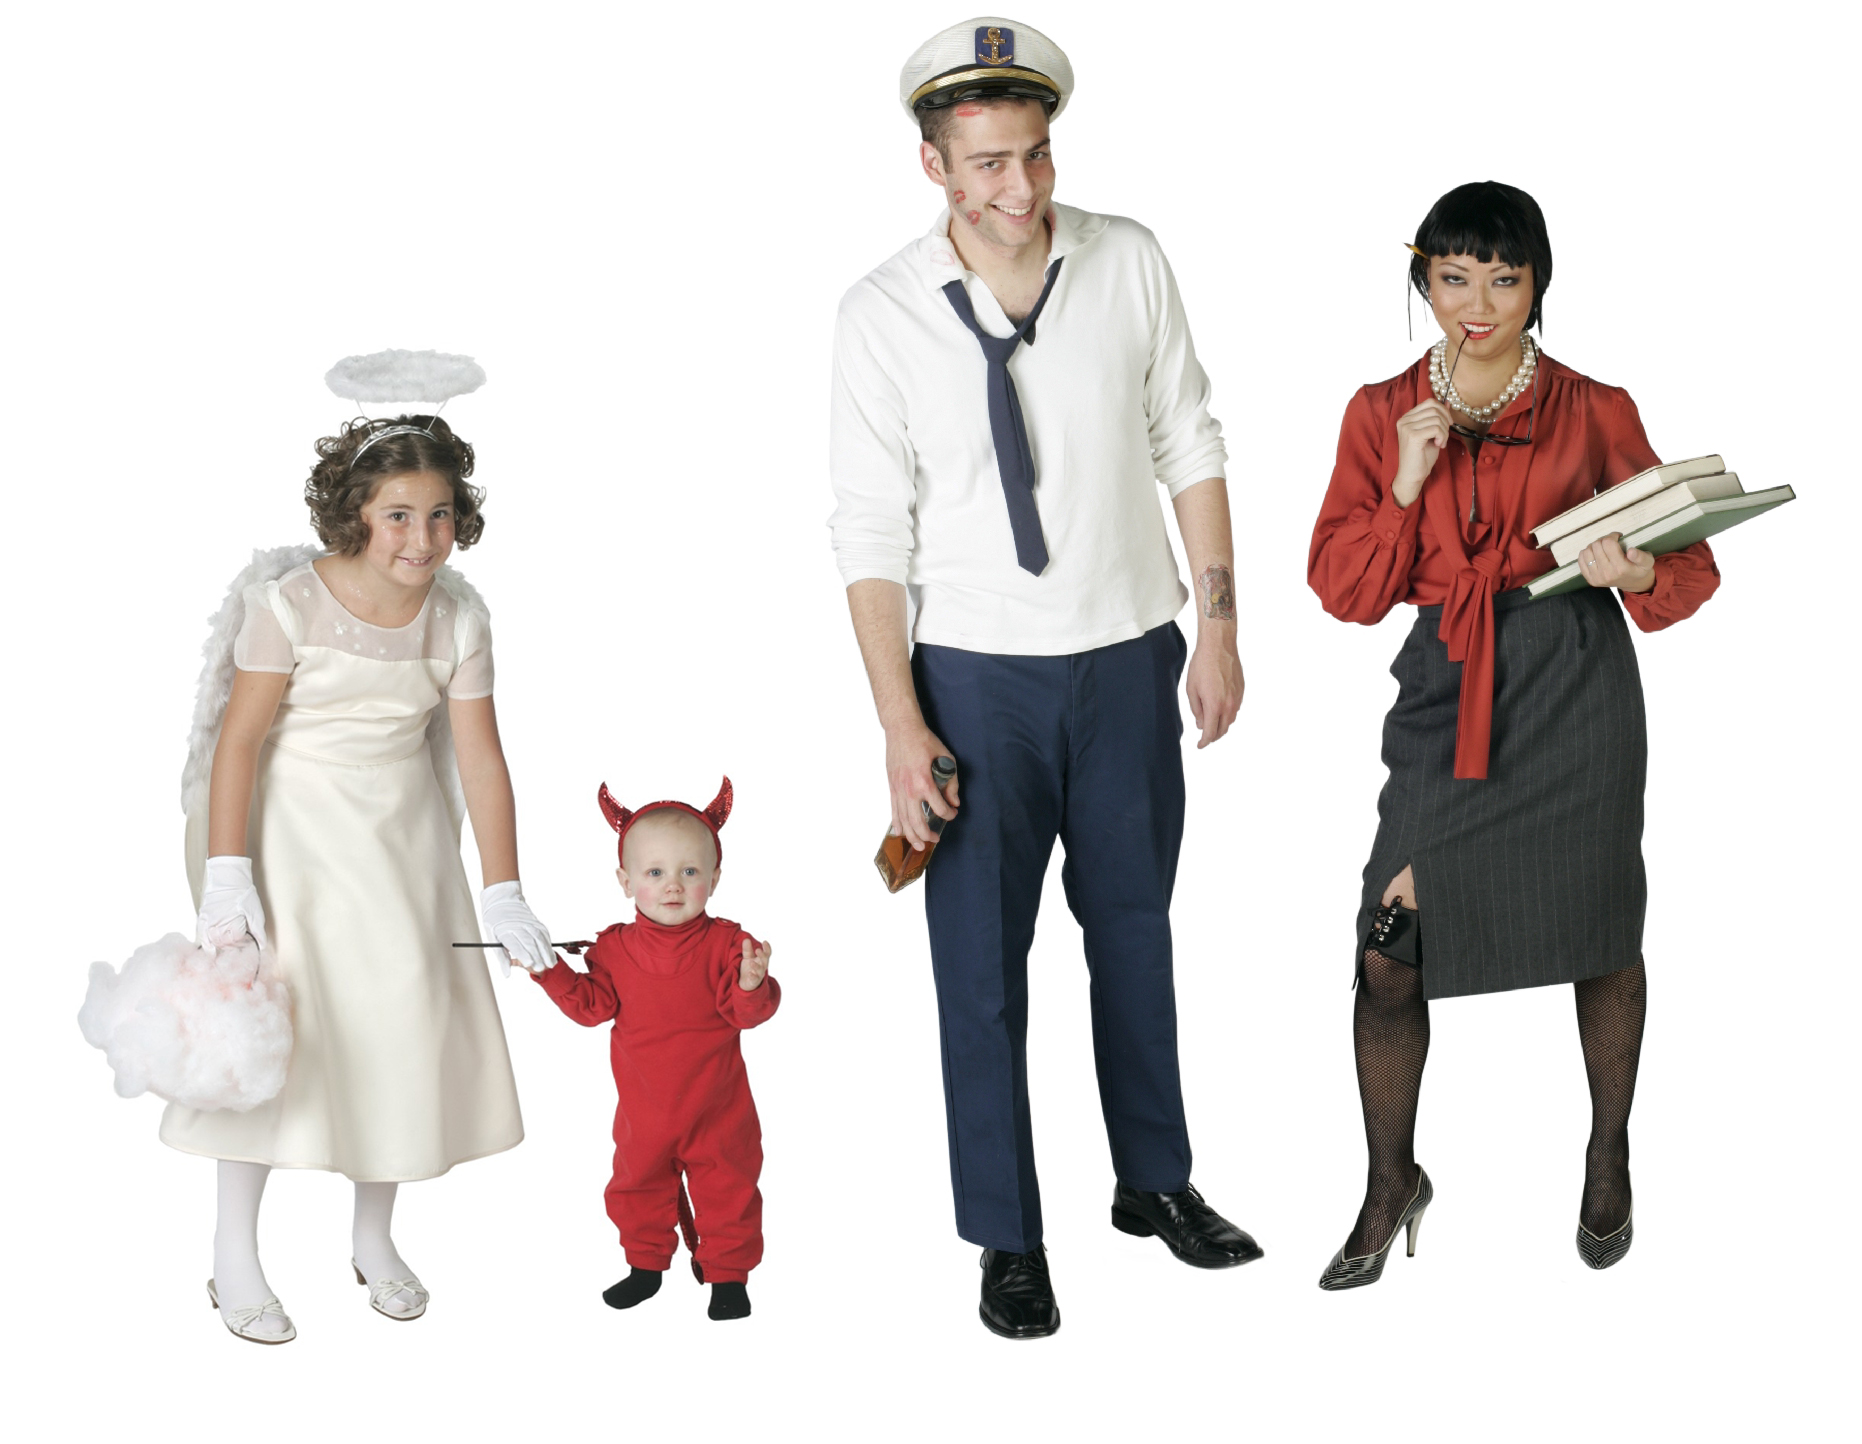 Pictured costumes include an angel ($25) little devil ($10) sailor in port ($25) and sexy librarian ($30).Inexpensive thrift store costumes  sc 1 st  PR Web & Savers® Survey Reveals WhatÂu0027s Hip for Halloween: Famous Characters ...